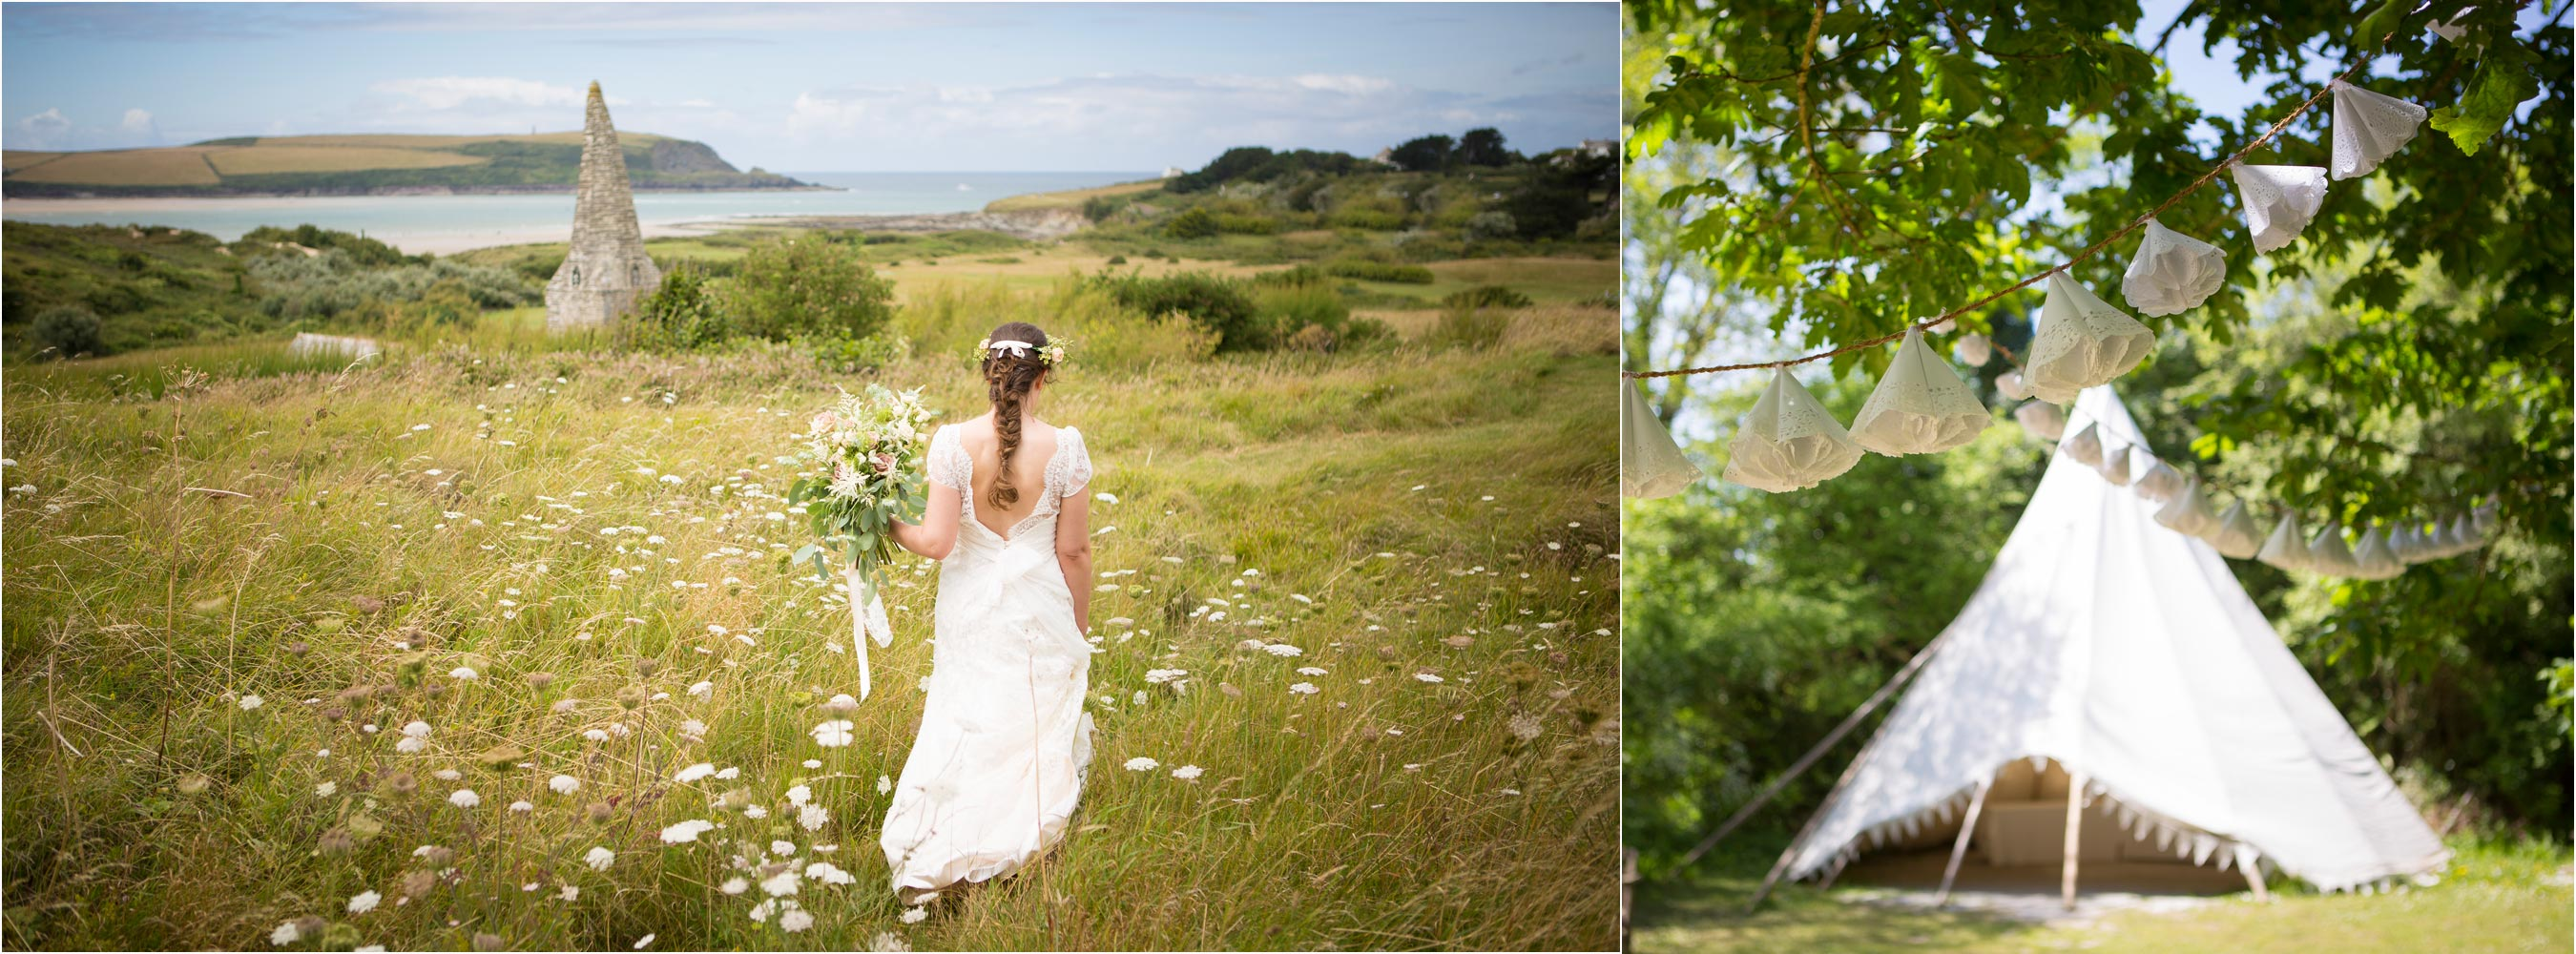 Daymer Bay Bride Woodland tipi